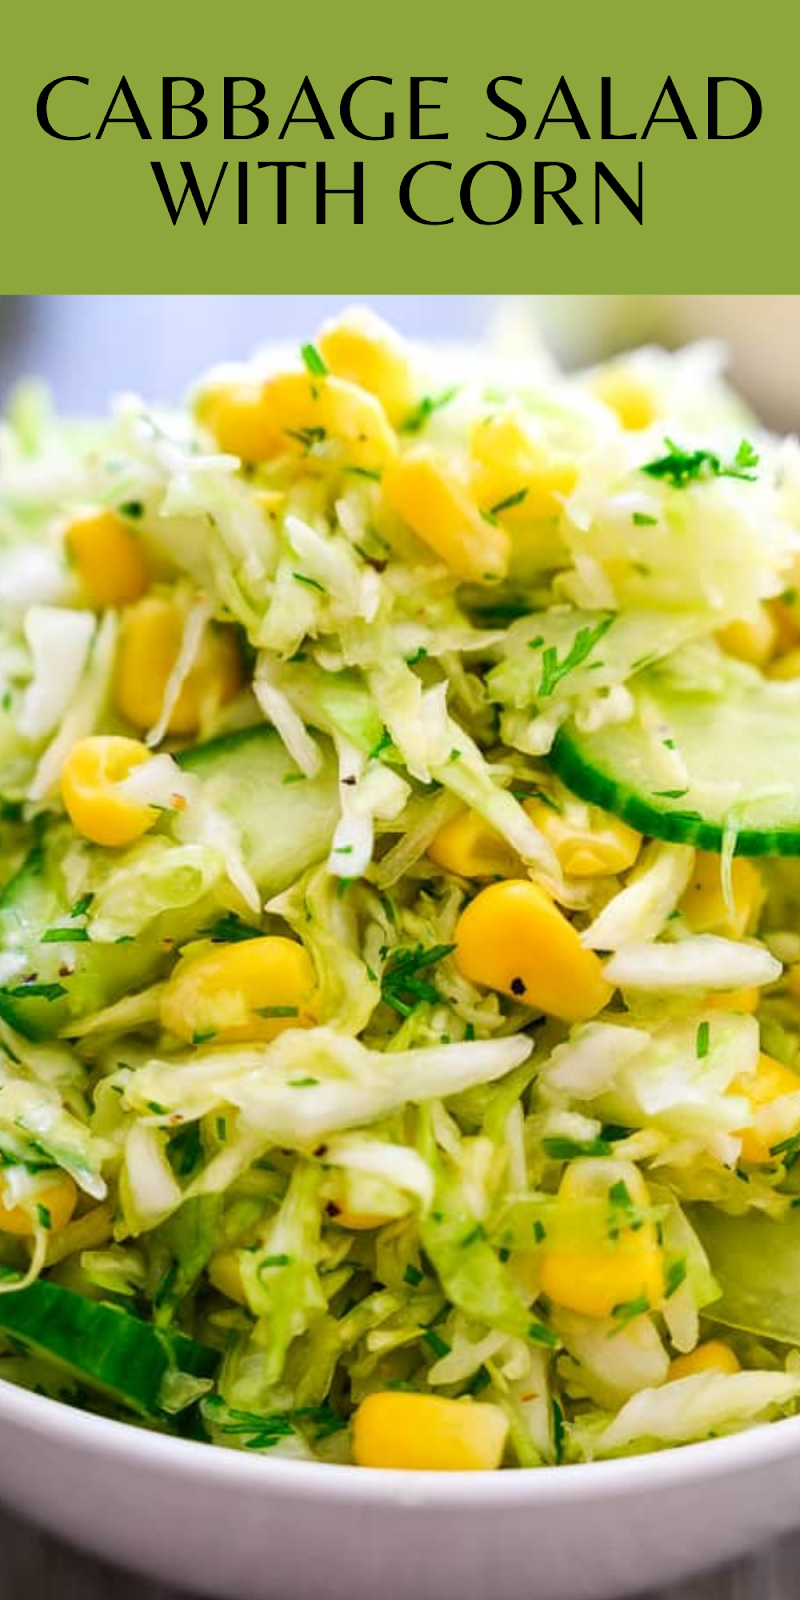 Cabbage Salad with Corn